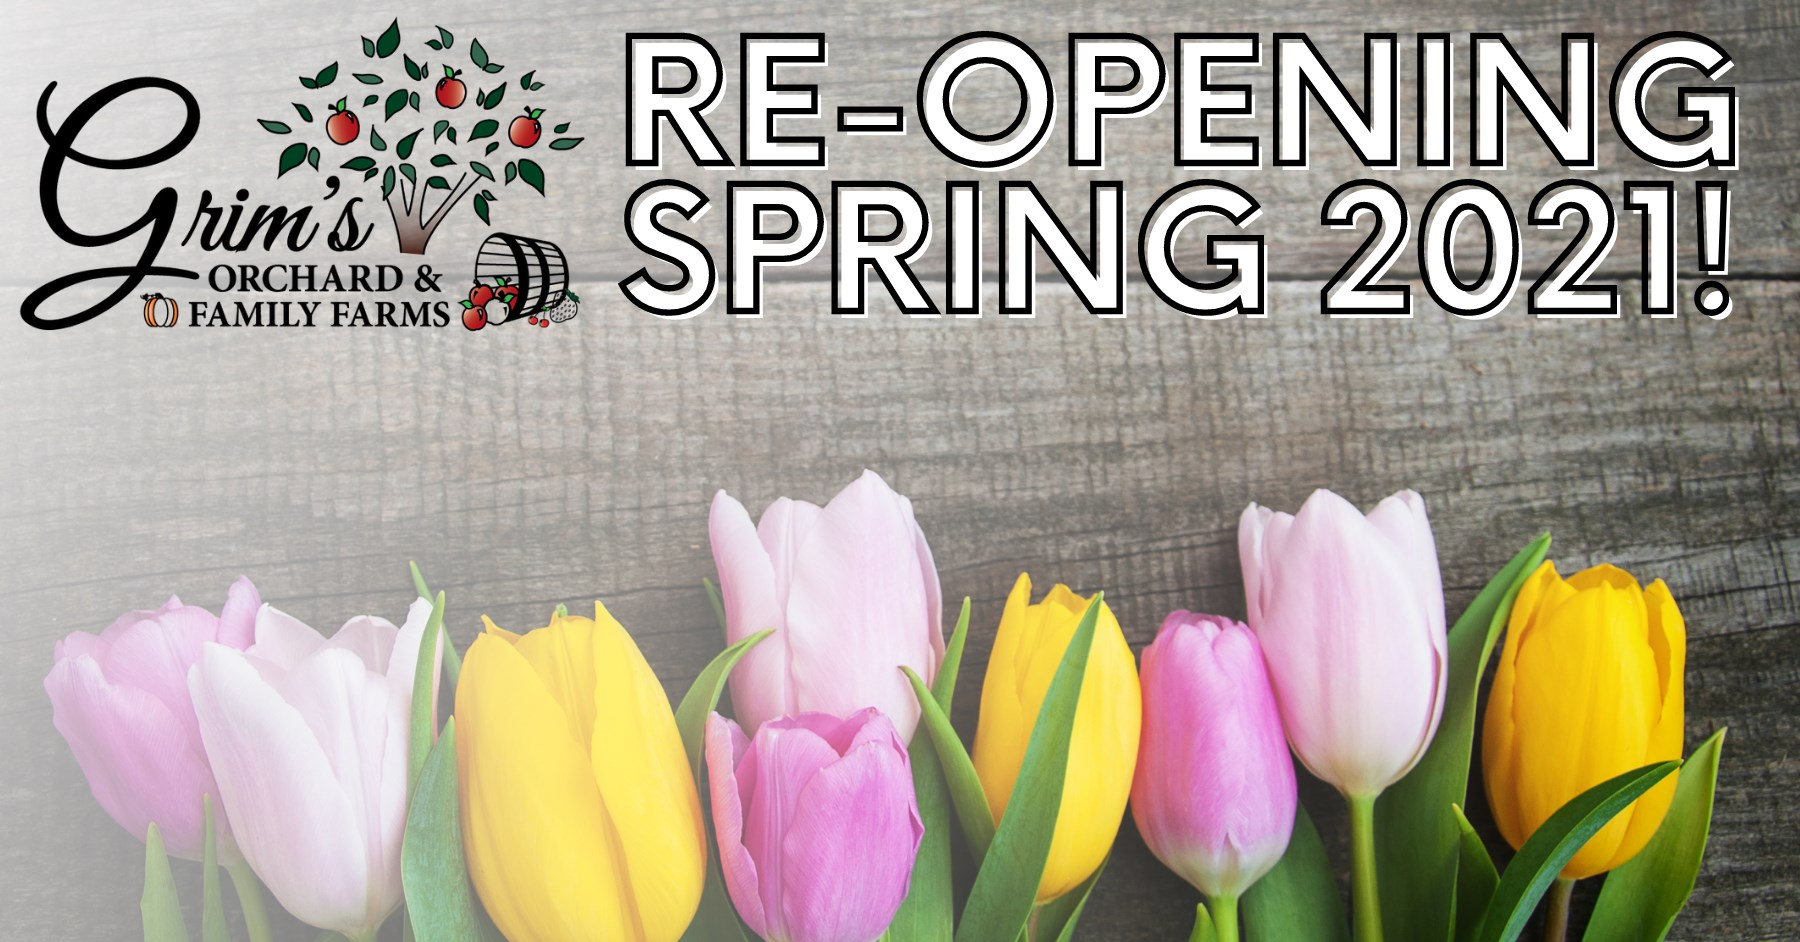 grims orchard and family farms re-opening spring 2021. join us for tulip picking